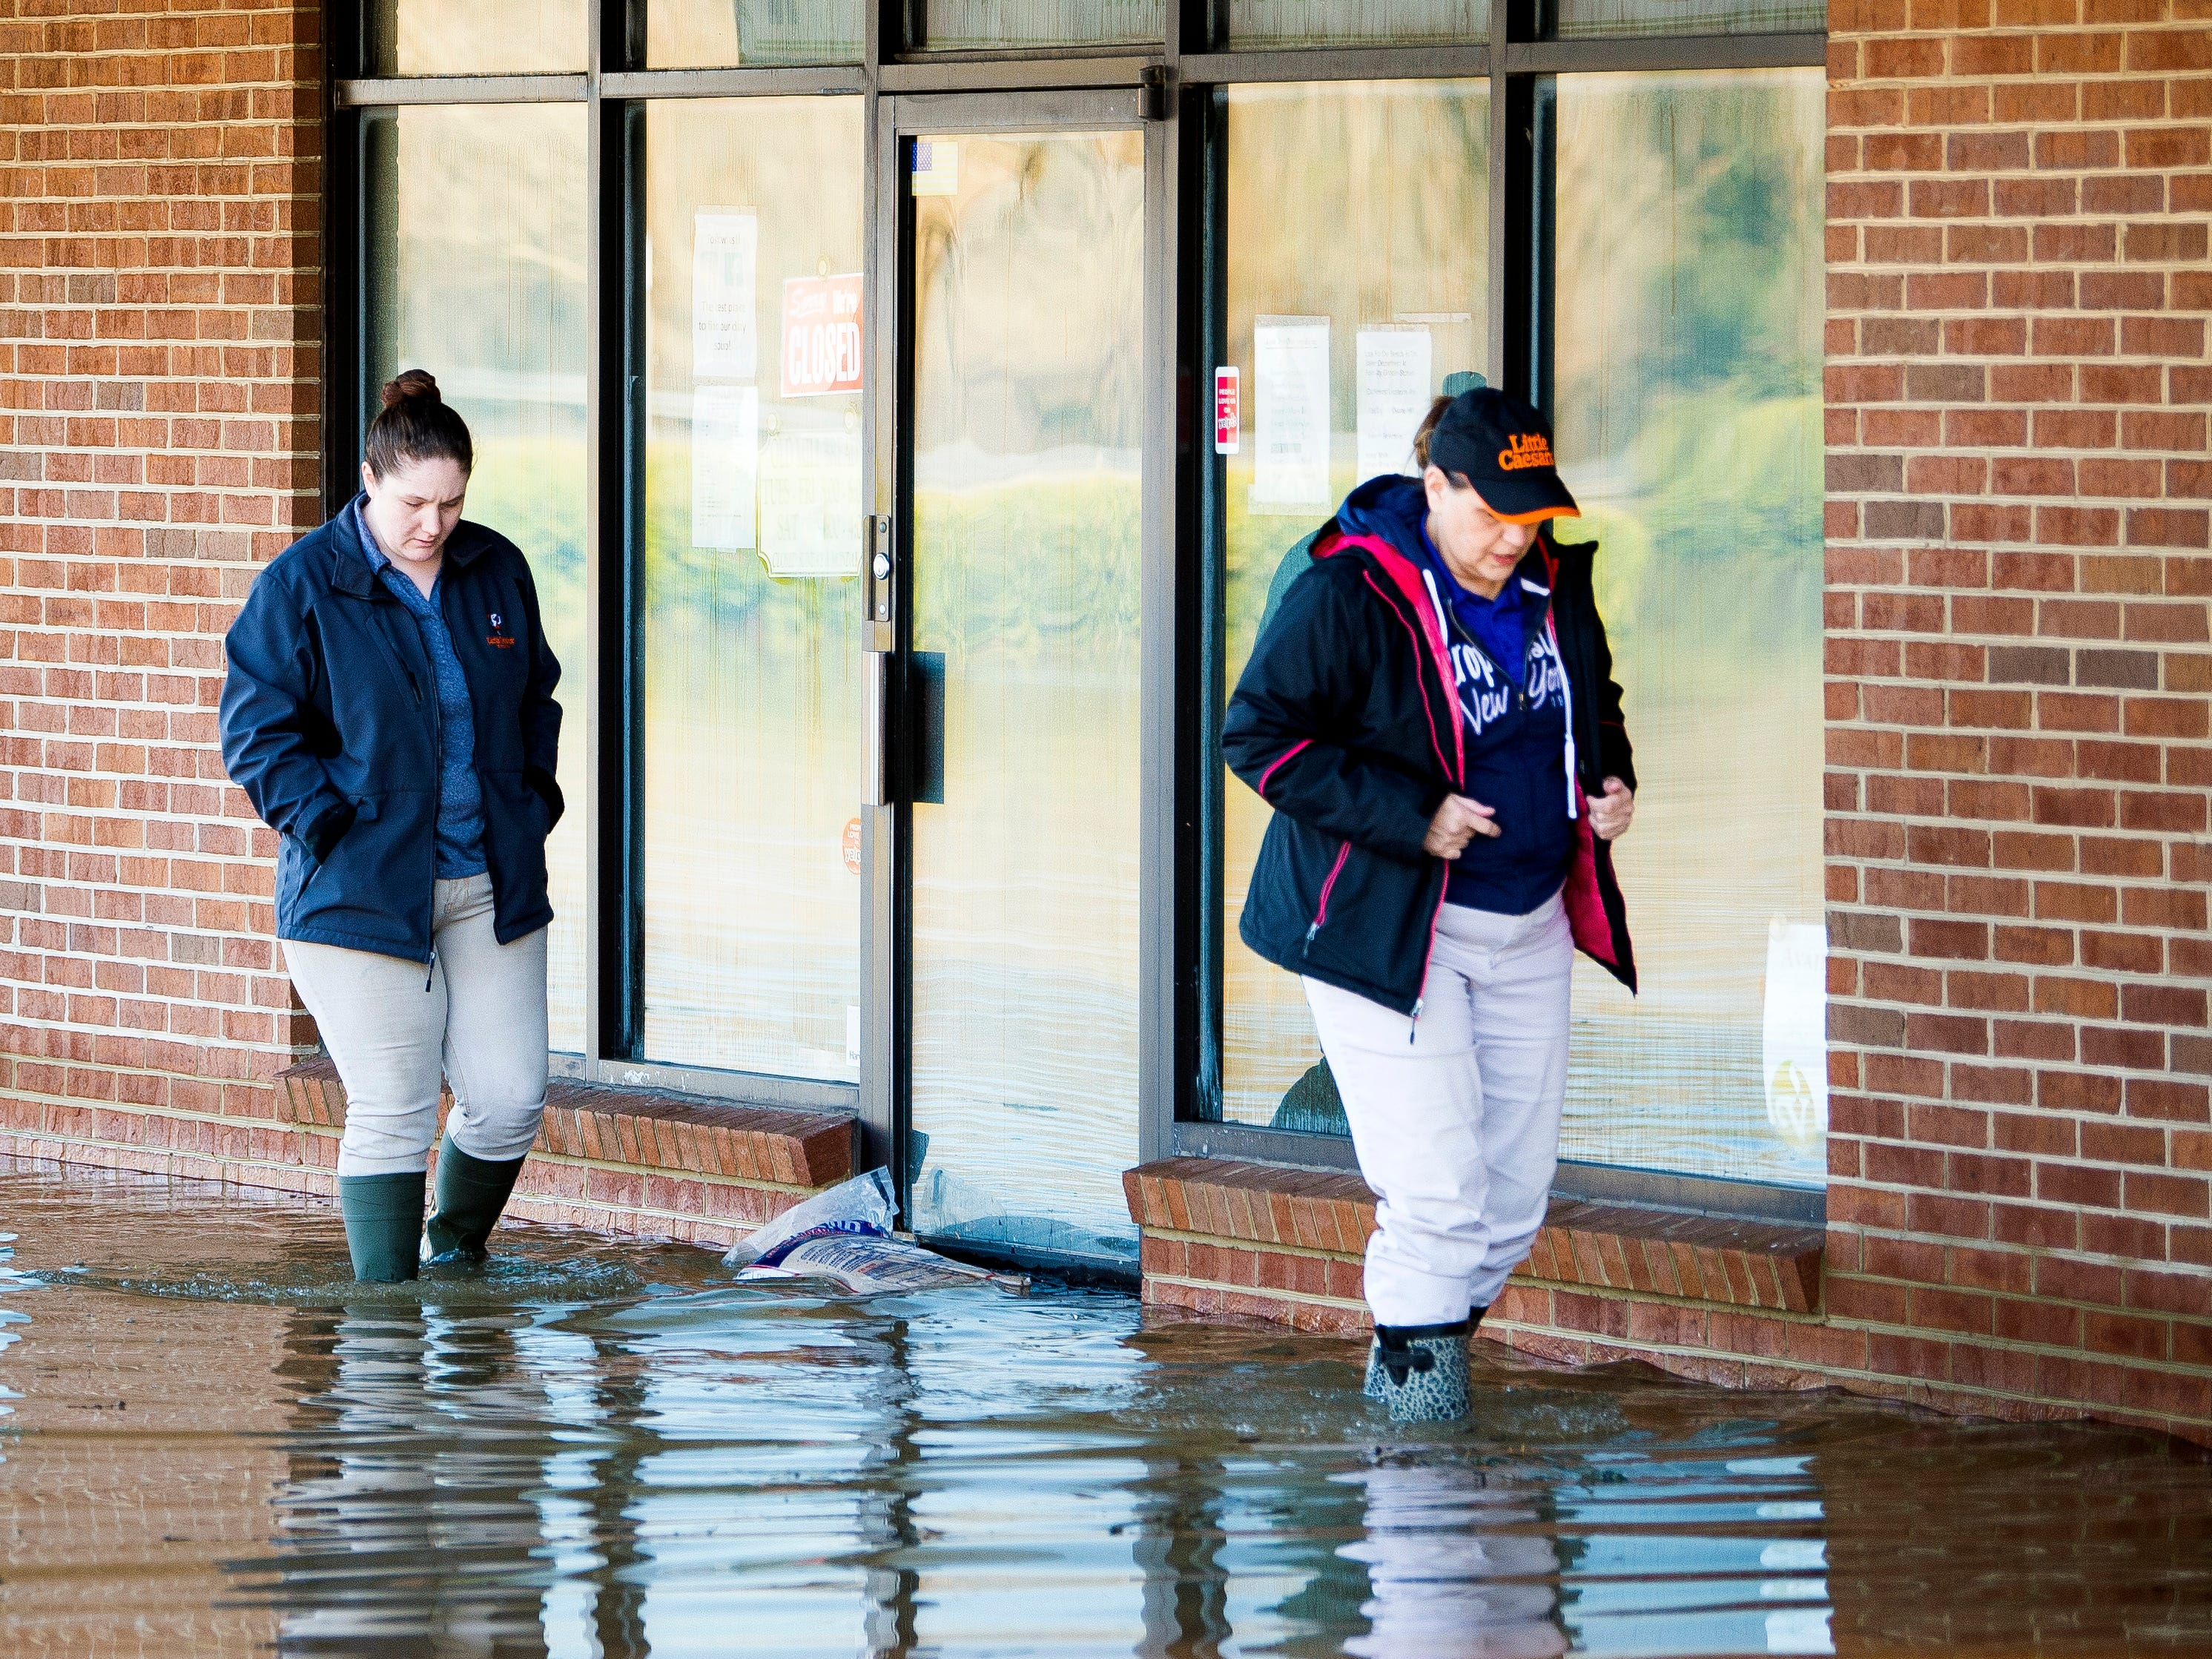 Little Caesars employees walk through floodwaters after checking in on the Little Caesars store in the North Cedar Bluff Plaza on N. Cedar Bluff Road on Monday, February 25, 2019.